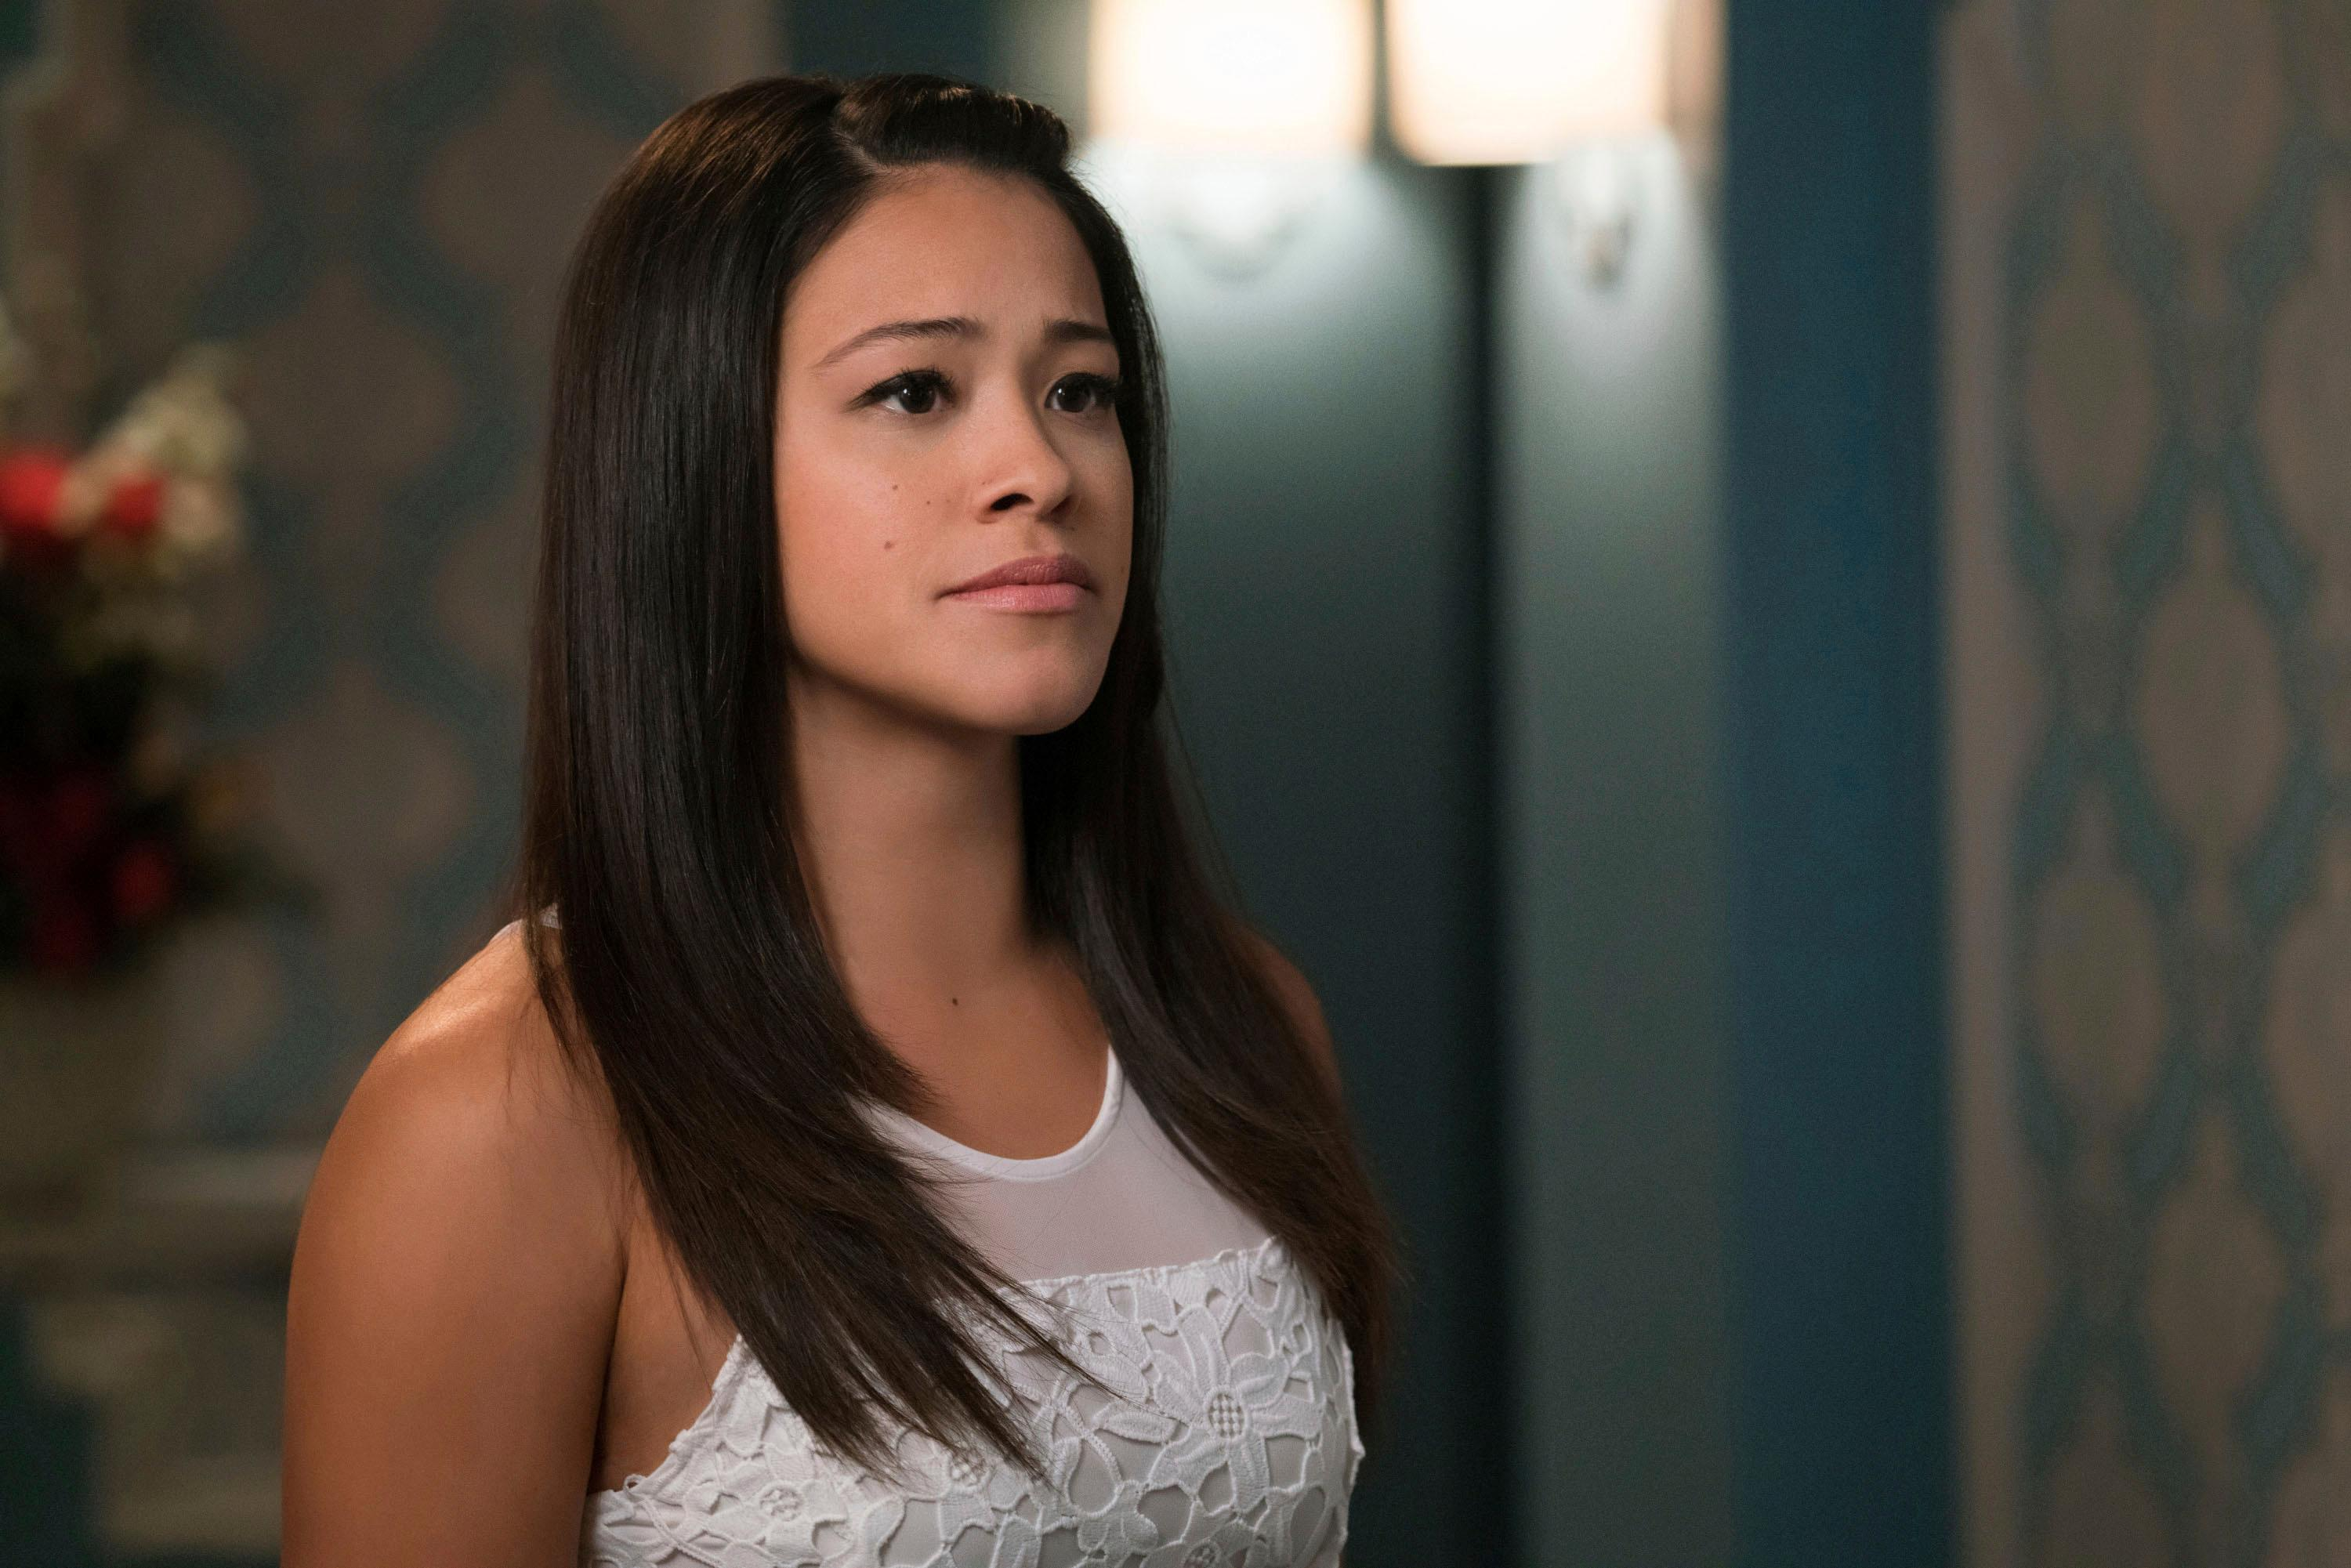 "In this image released by The CW, Gina Rodriguez appears in a scene from, ""Jane The Virgin."" Fans and Latino diversity advocates are lamenting the end of two well-known Latino-themed television shows, Netflix's ""One Day at a Time"" and CW's ""Jane the Virgin."" But other shows featuring U.S. Latino characters are trying to step in and capture the attention of fragmented audiences looking for diversity. (Michael Desmond/The CW via AP)"